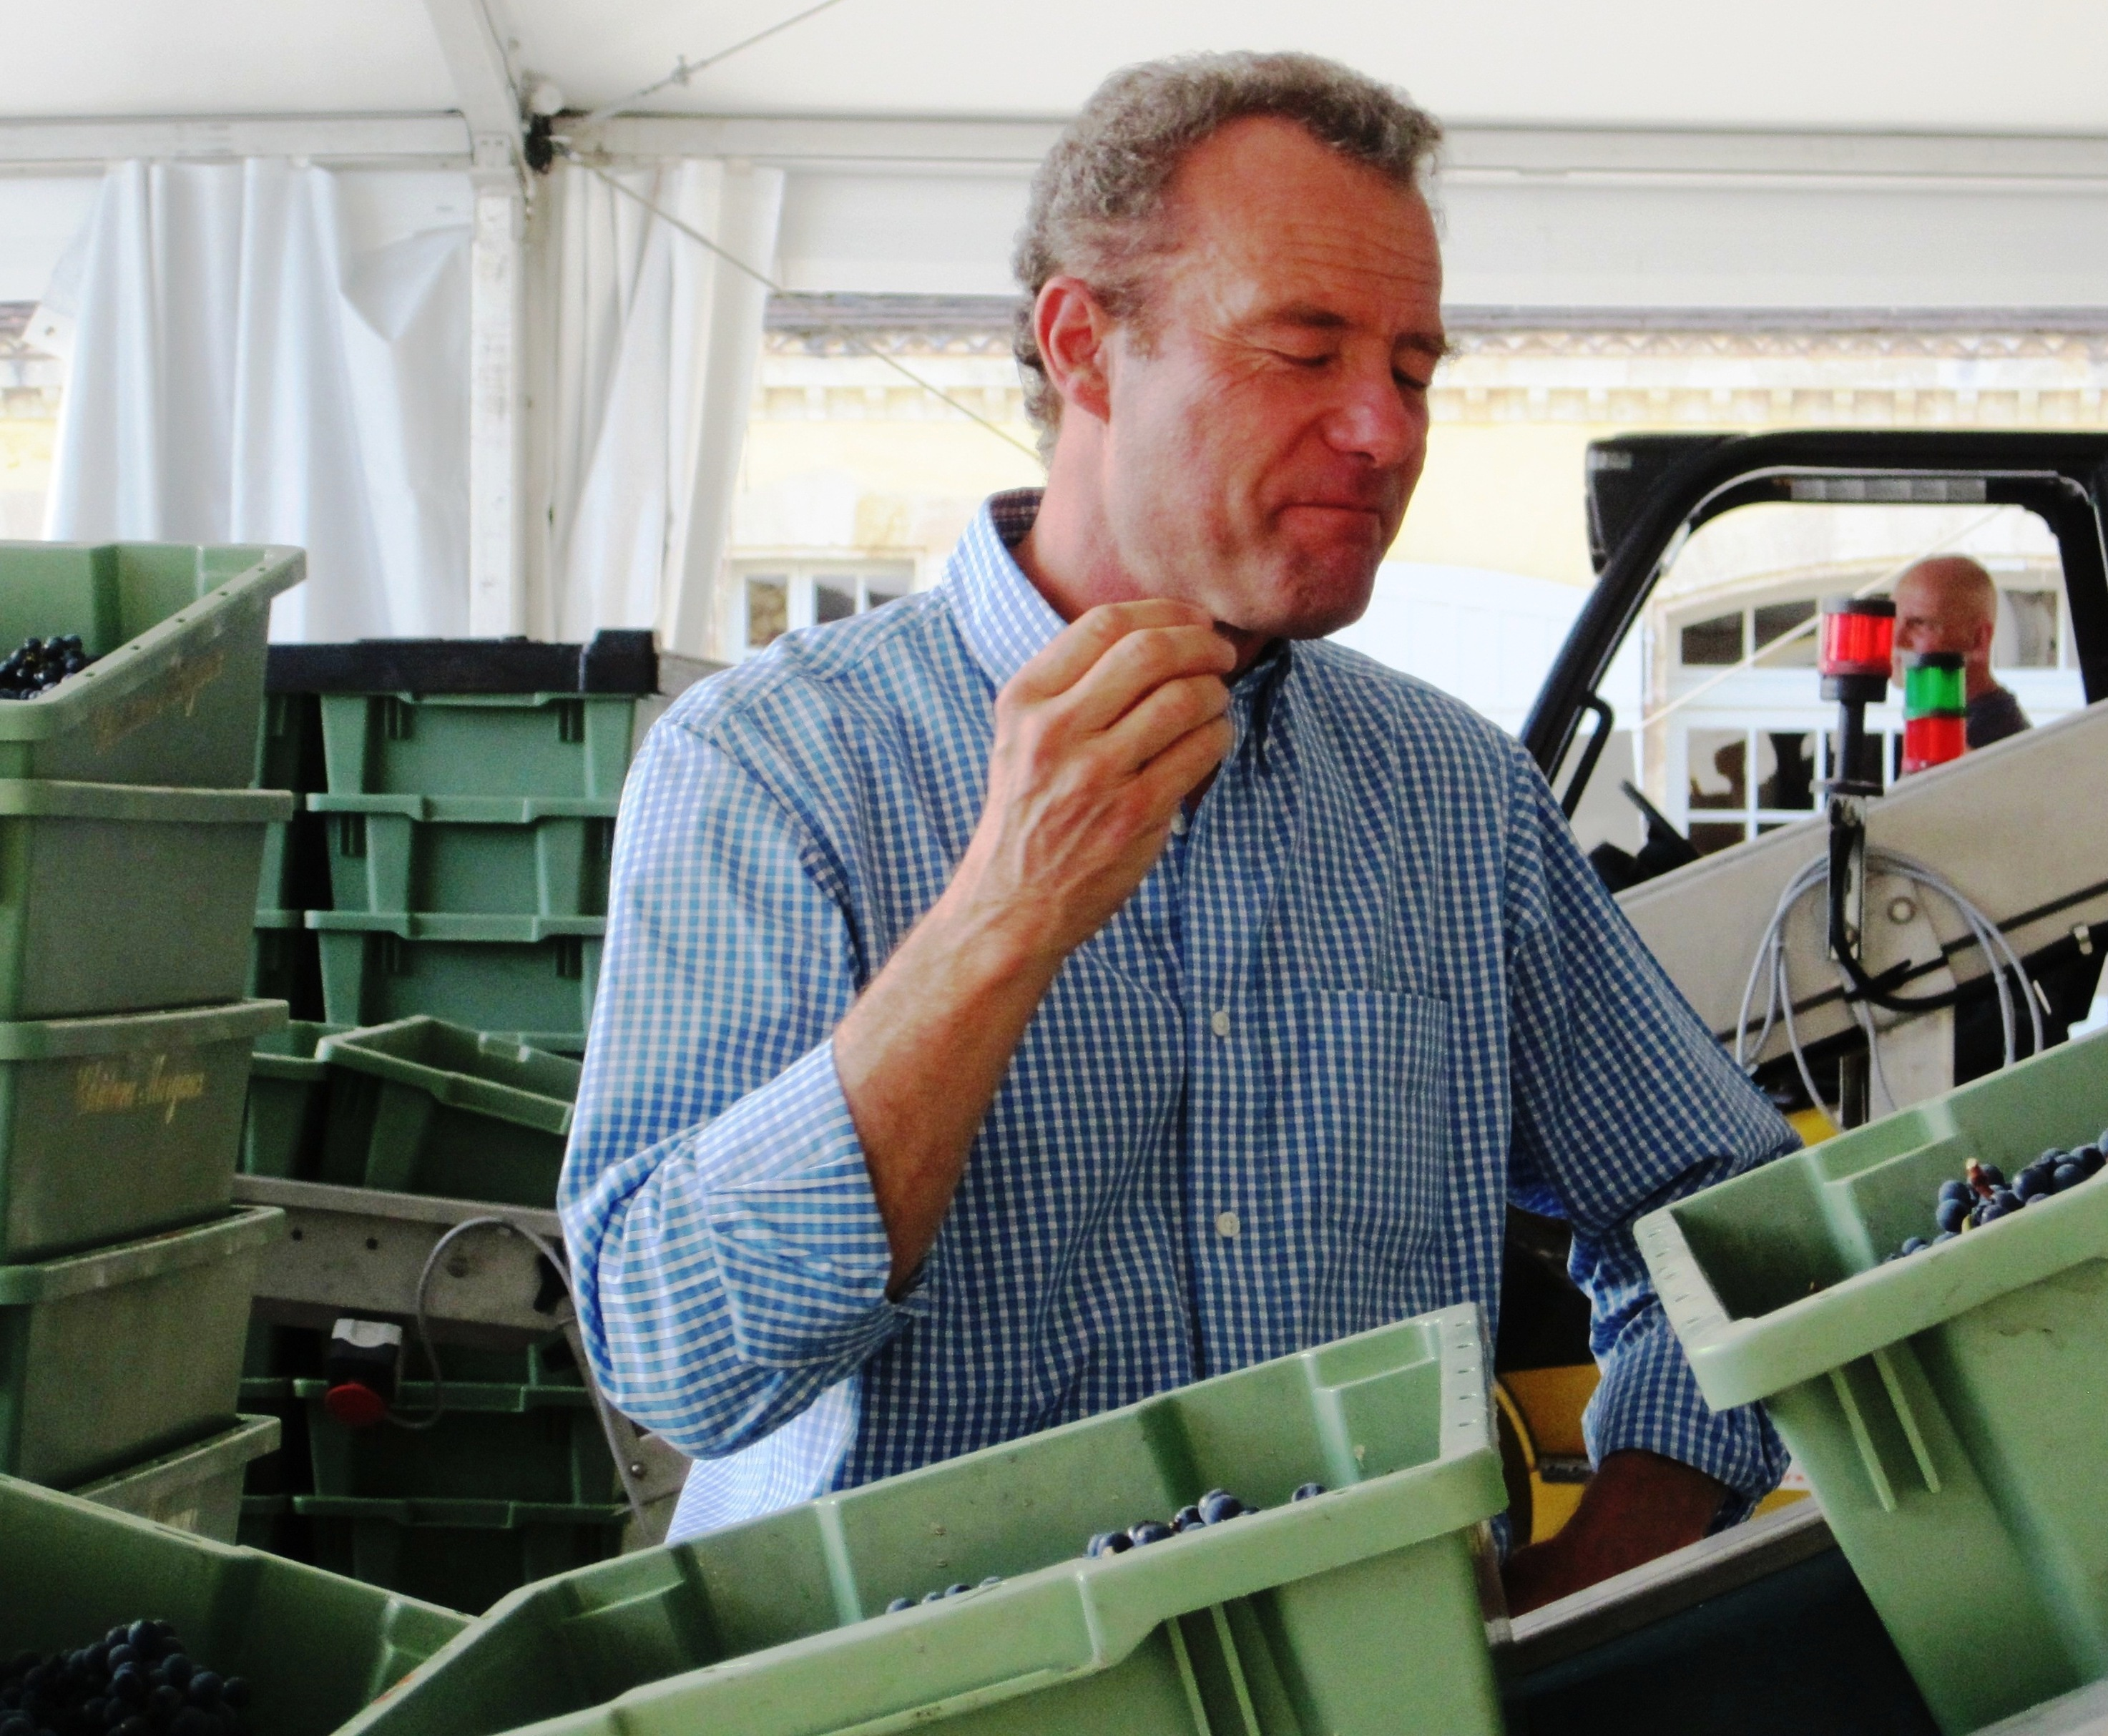 Paul Pontallier 2009 Margaux Harvest a perfect vintage! Other Chateaux weigh in